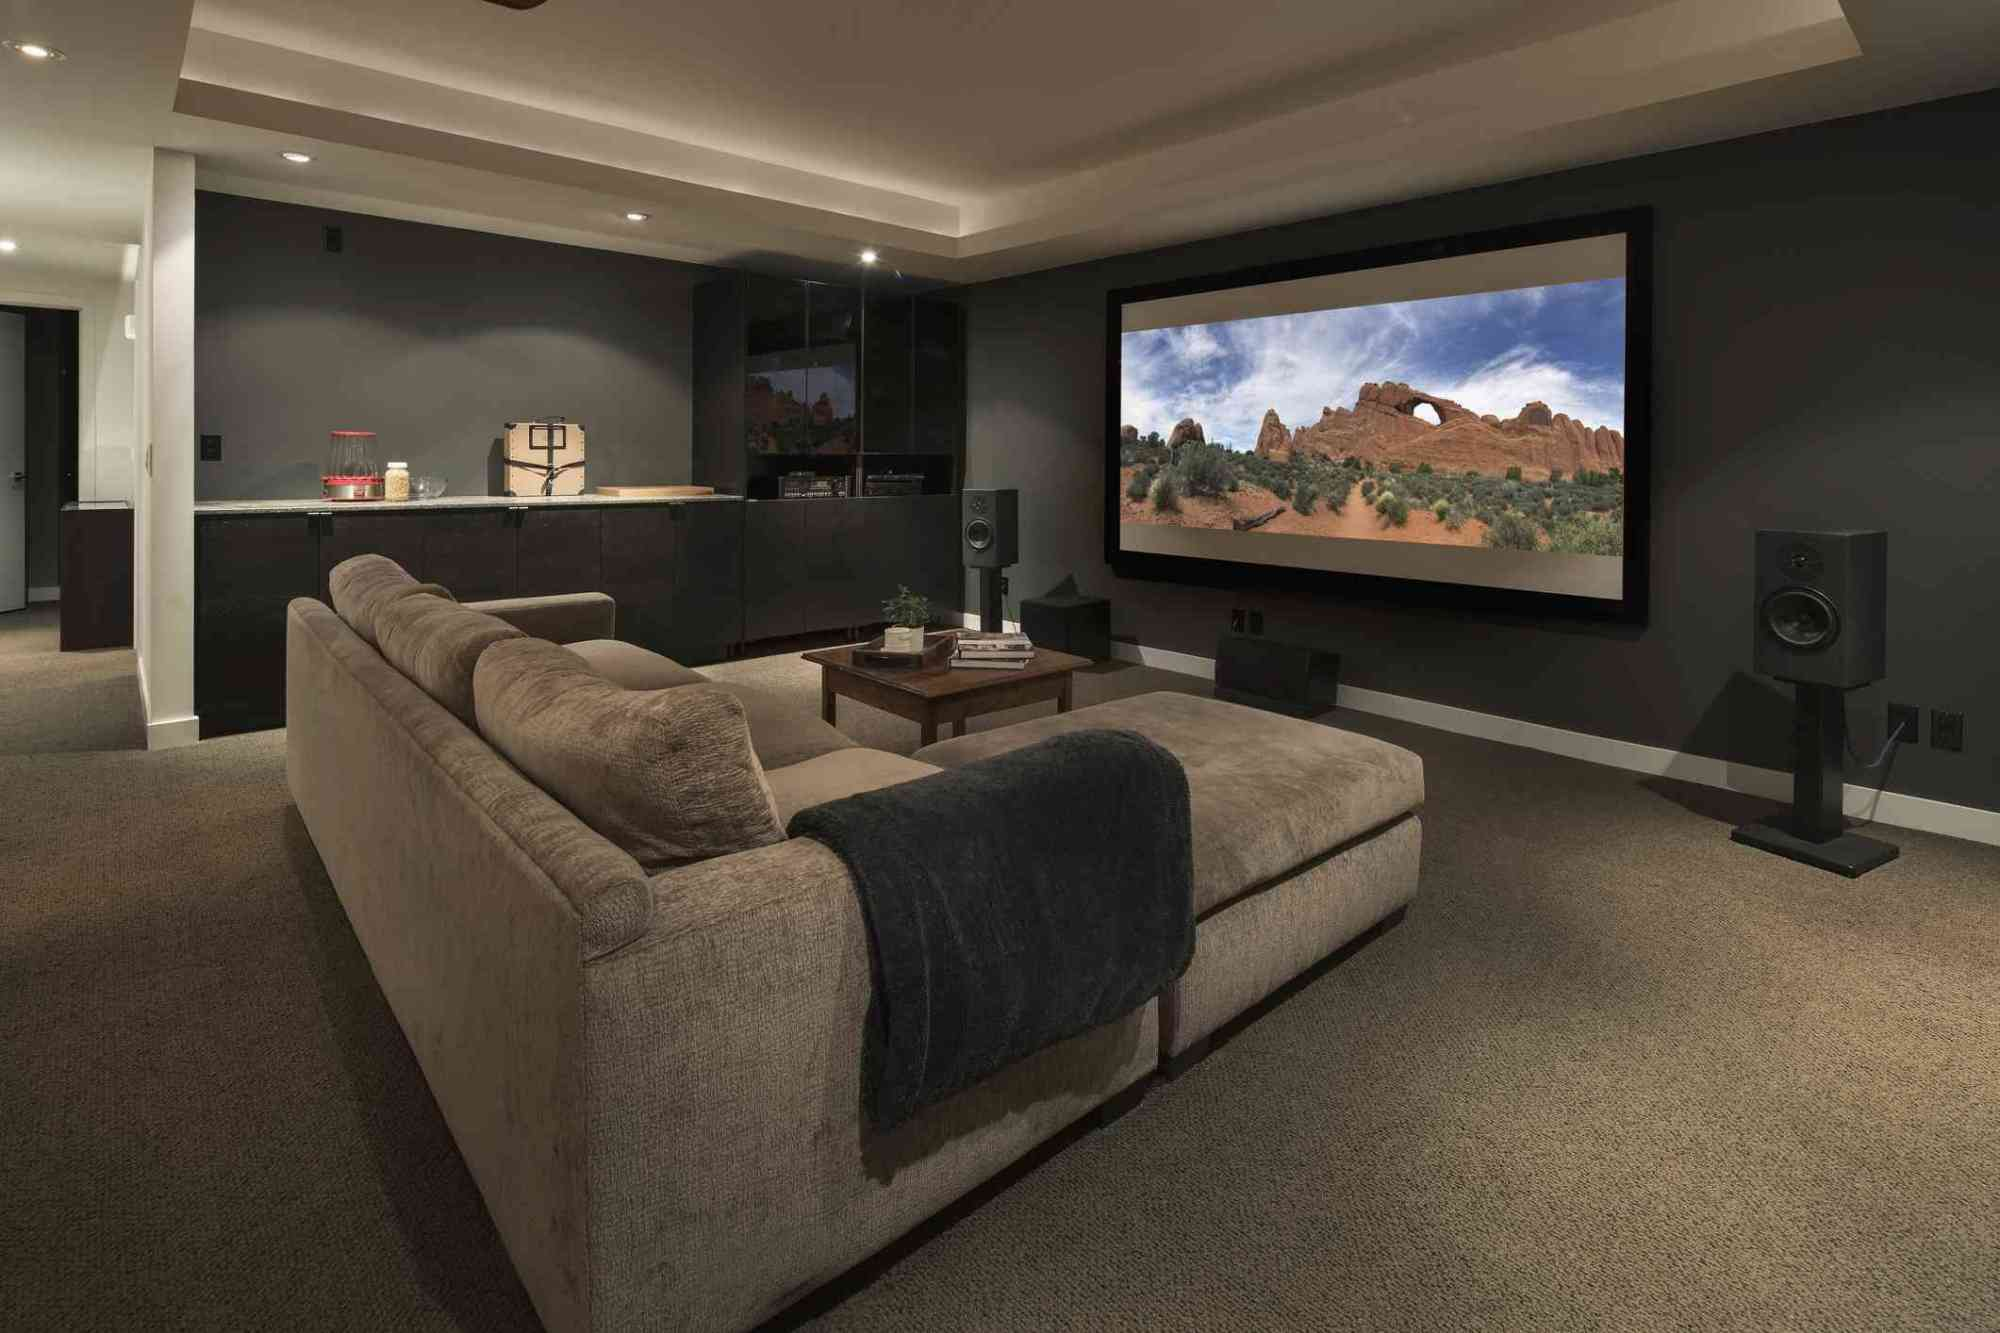 hight resolution of movie playing on projection screen in home theater